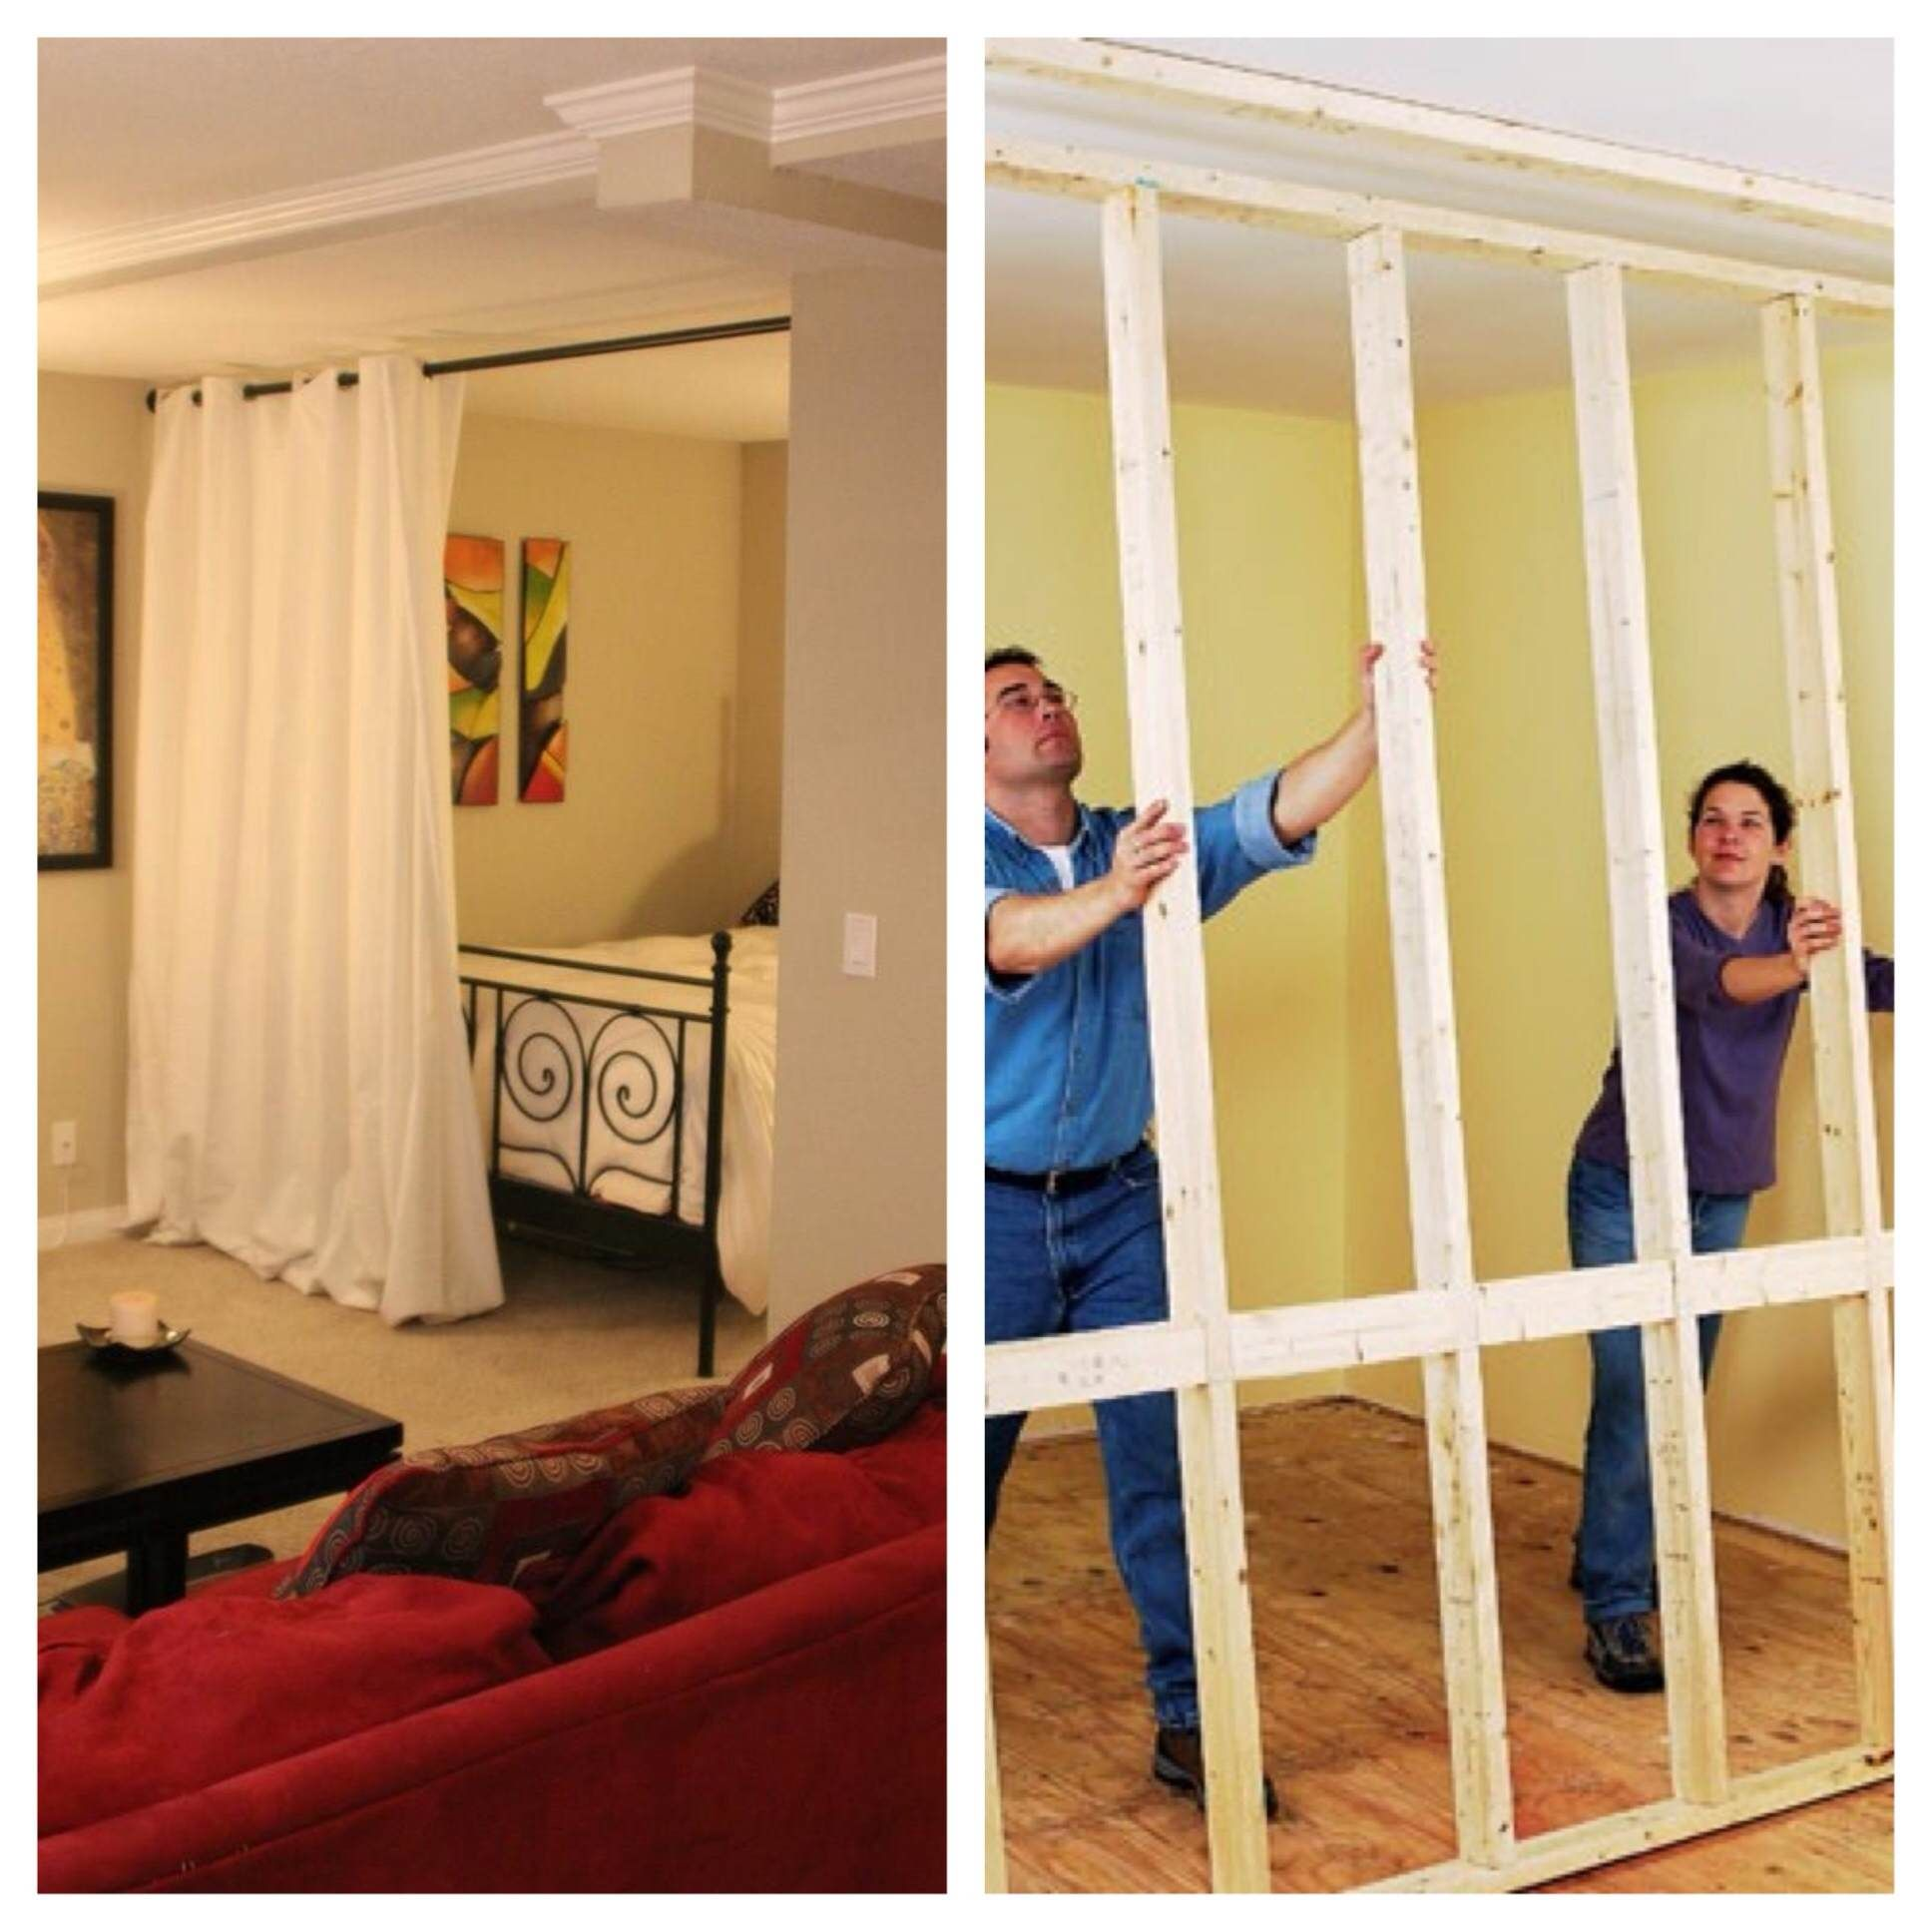 Bedroom Separators Hanging Room Divider Kits Roommate Divider And Bedrooms